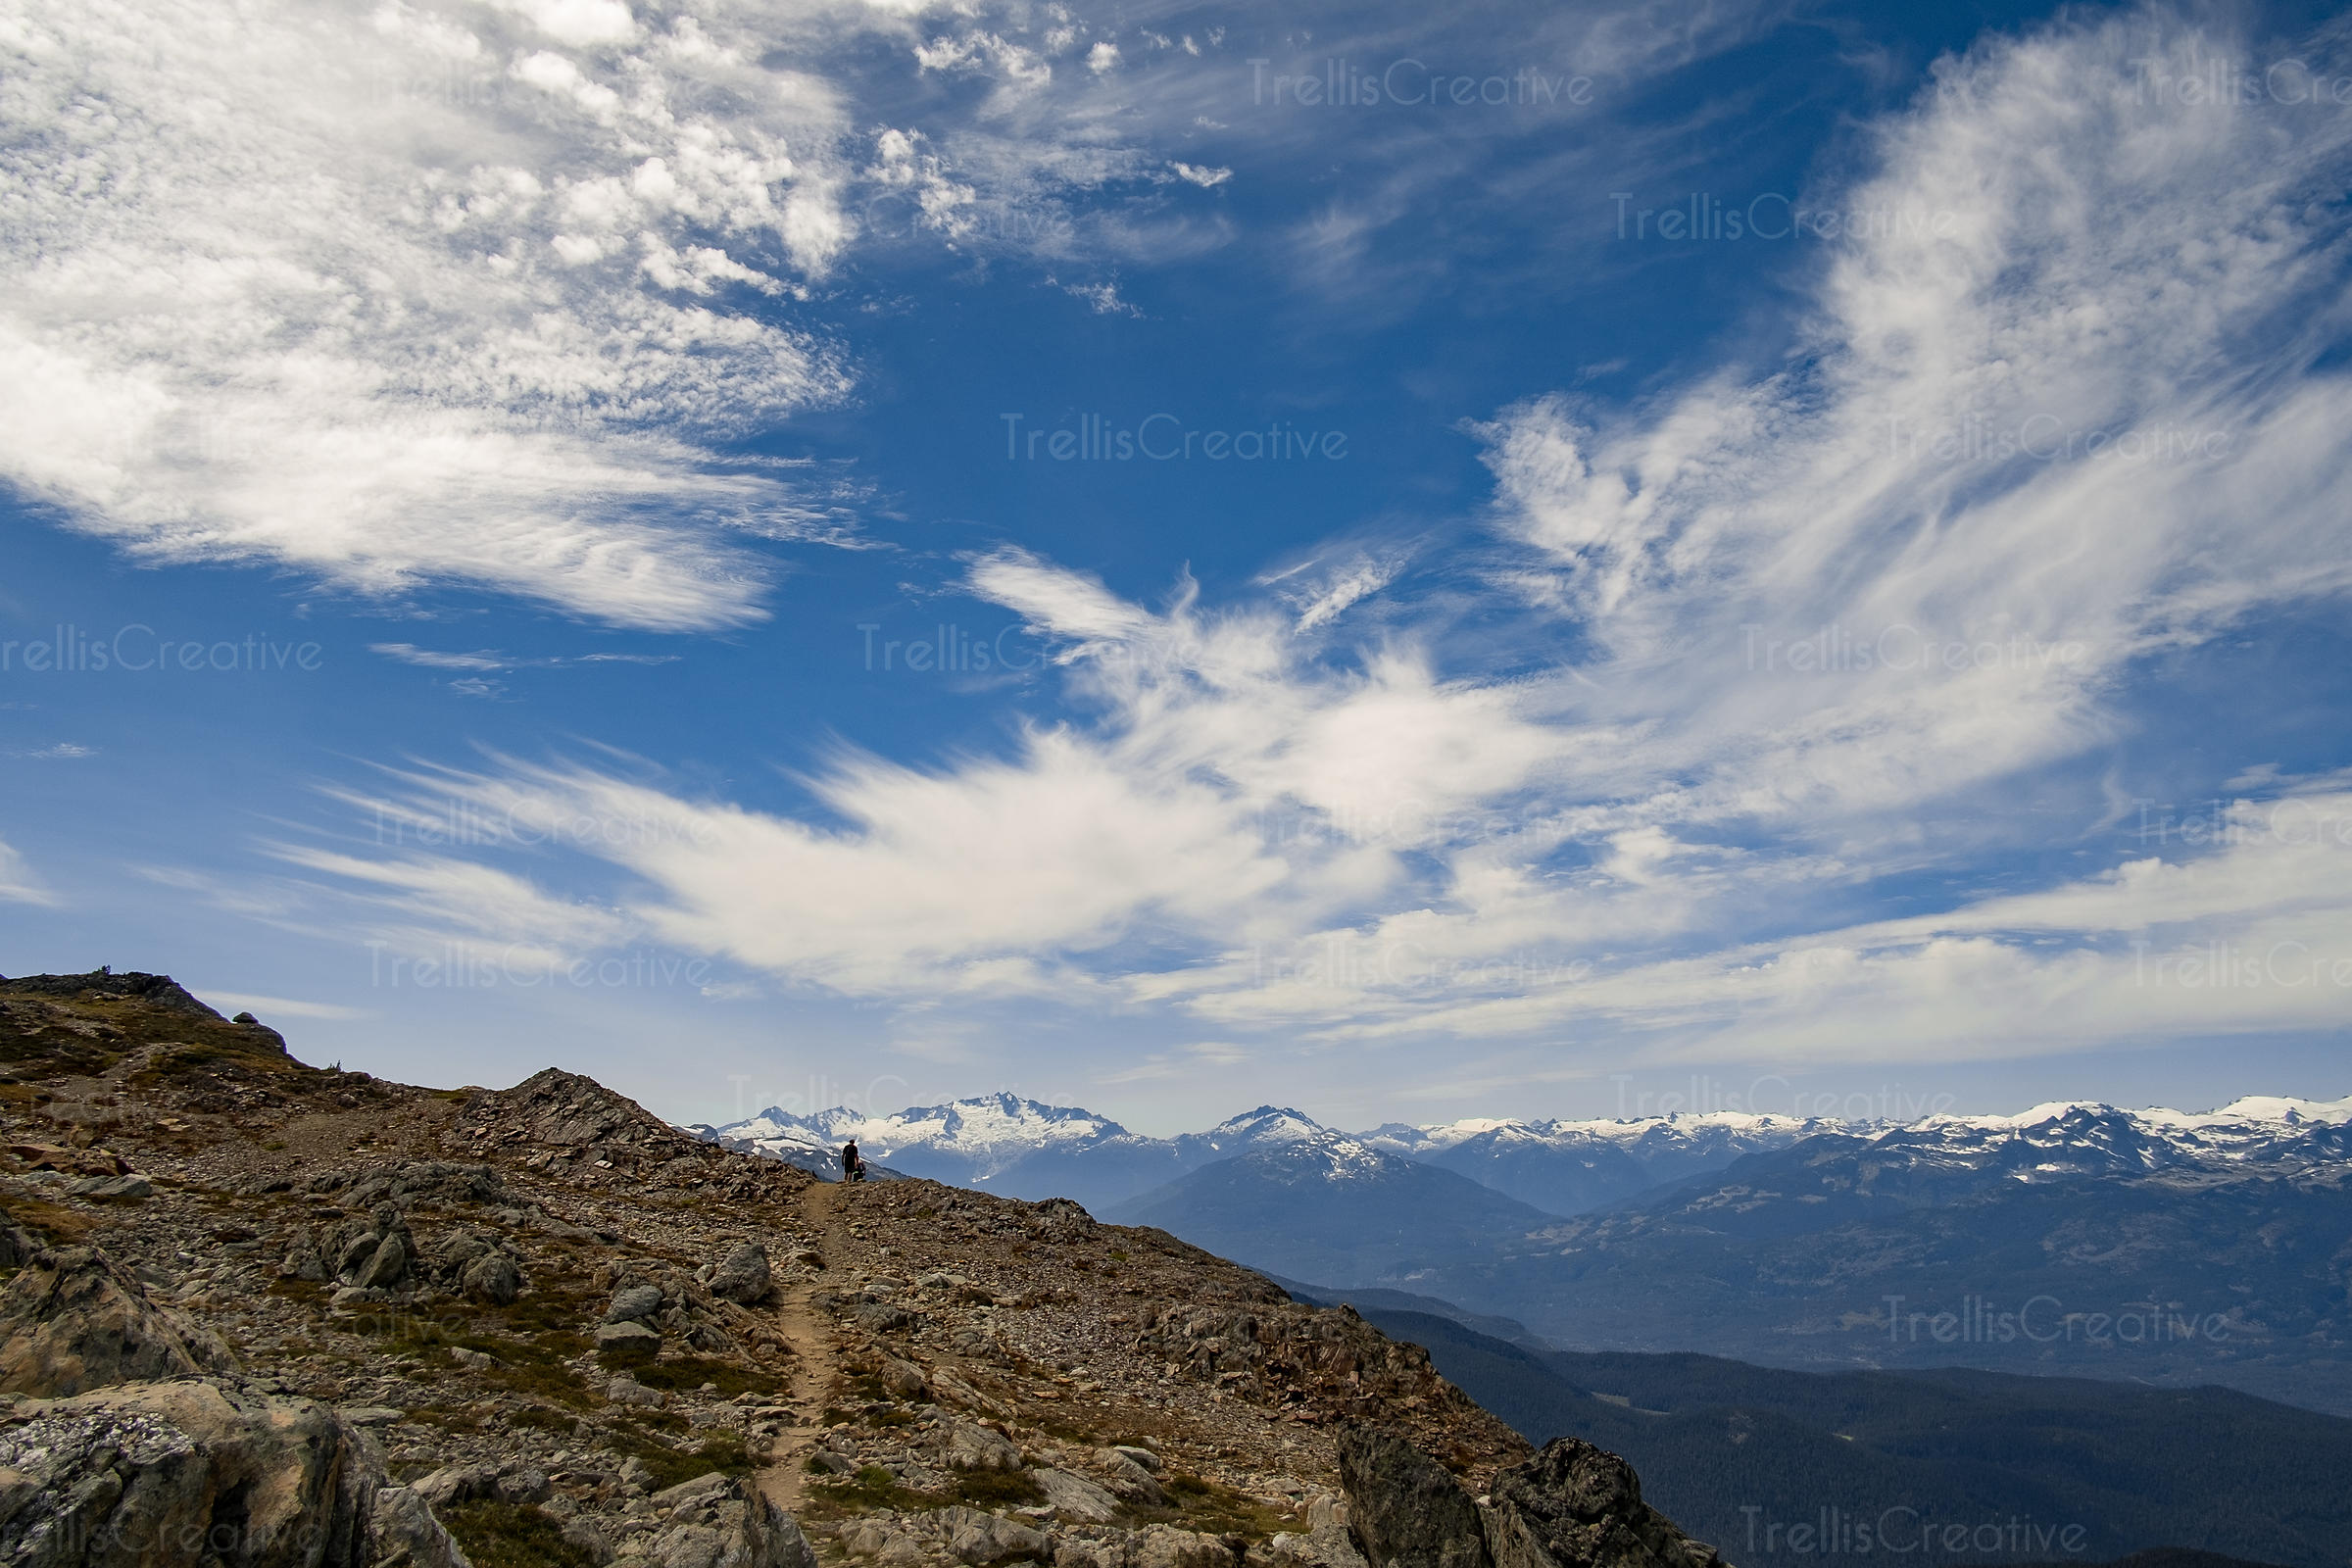 Hiker on remote mountain trail, Blackcomb Mountain, Whistler, Canada.